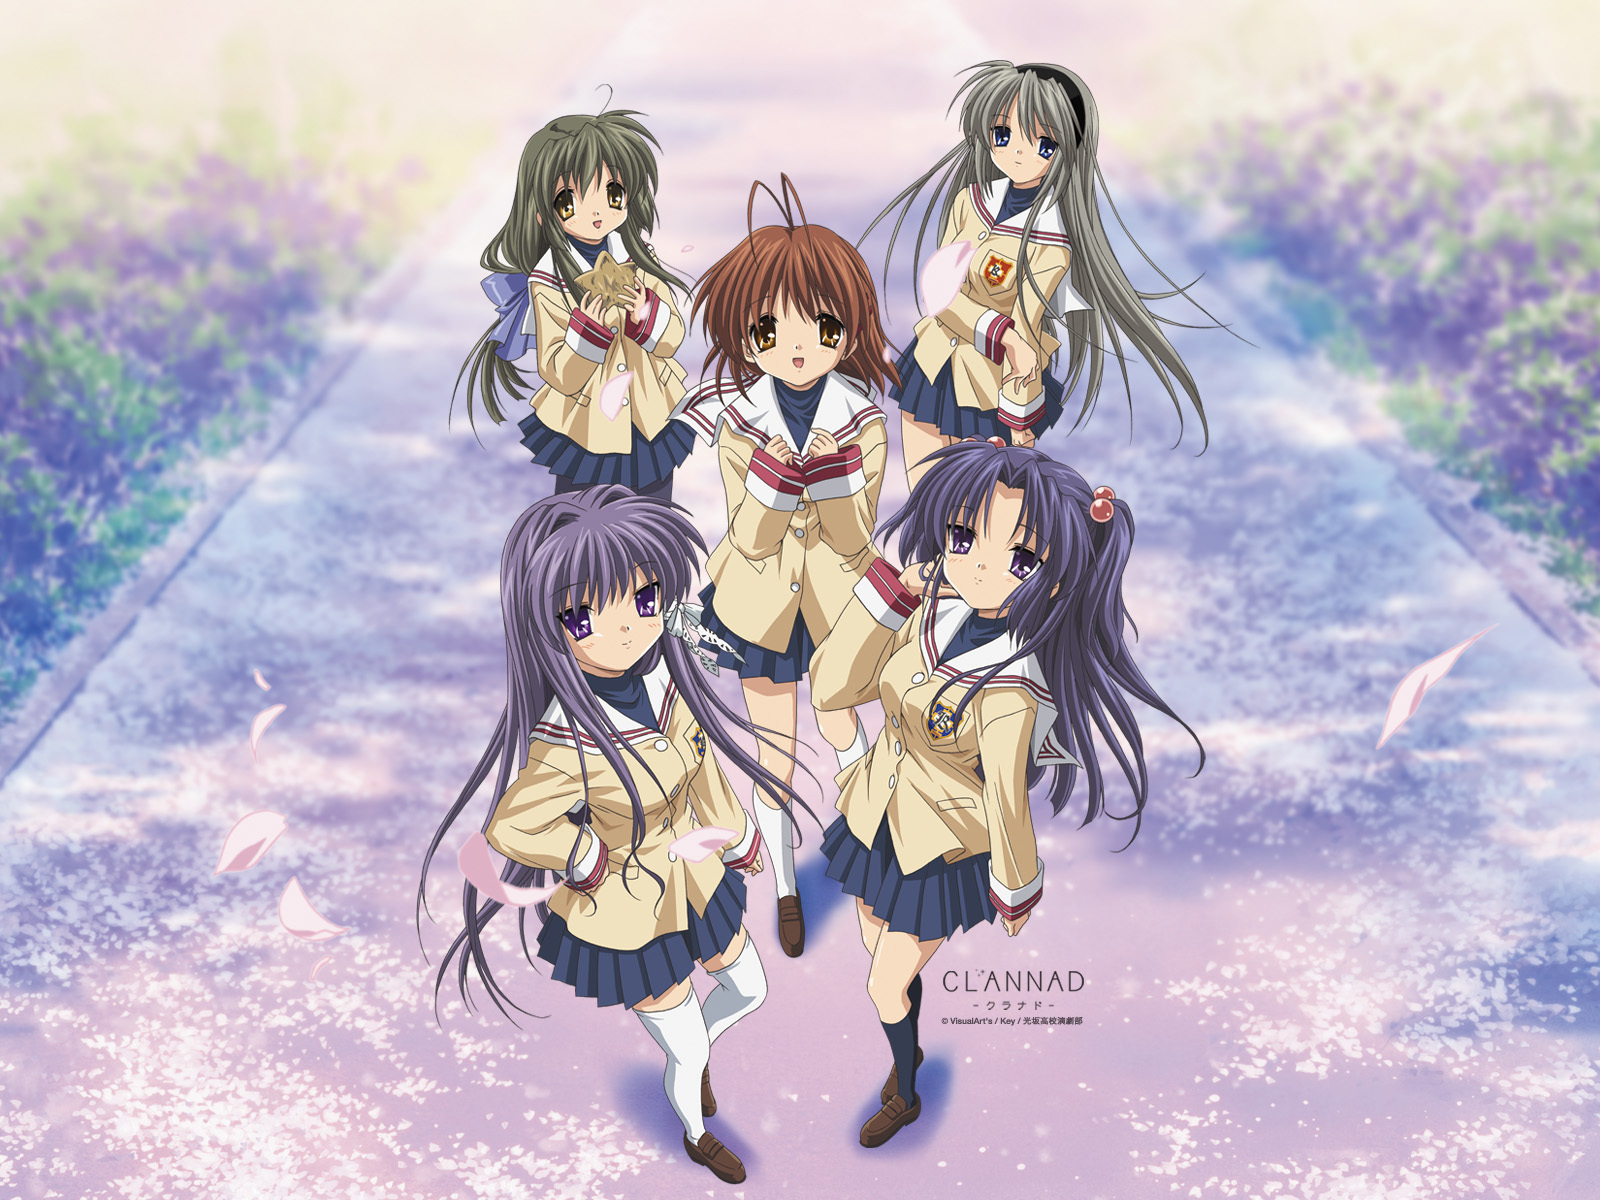 Free Download Clannad Clannad Wallpaper 12799954 1600x1200 For